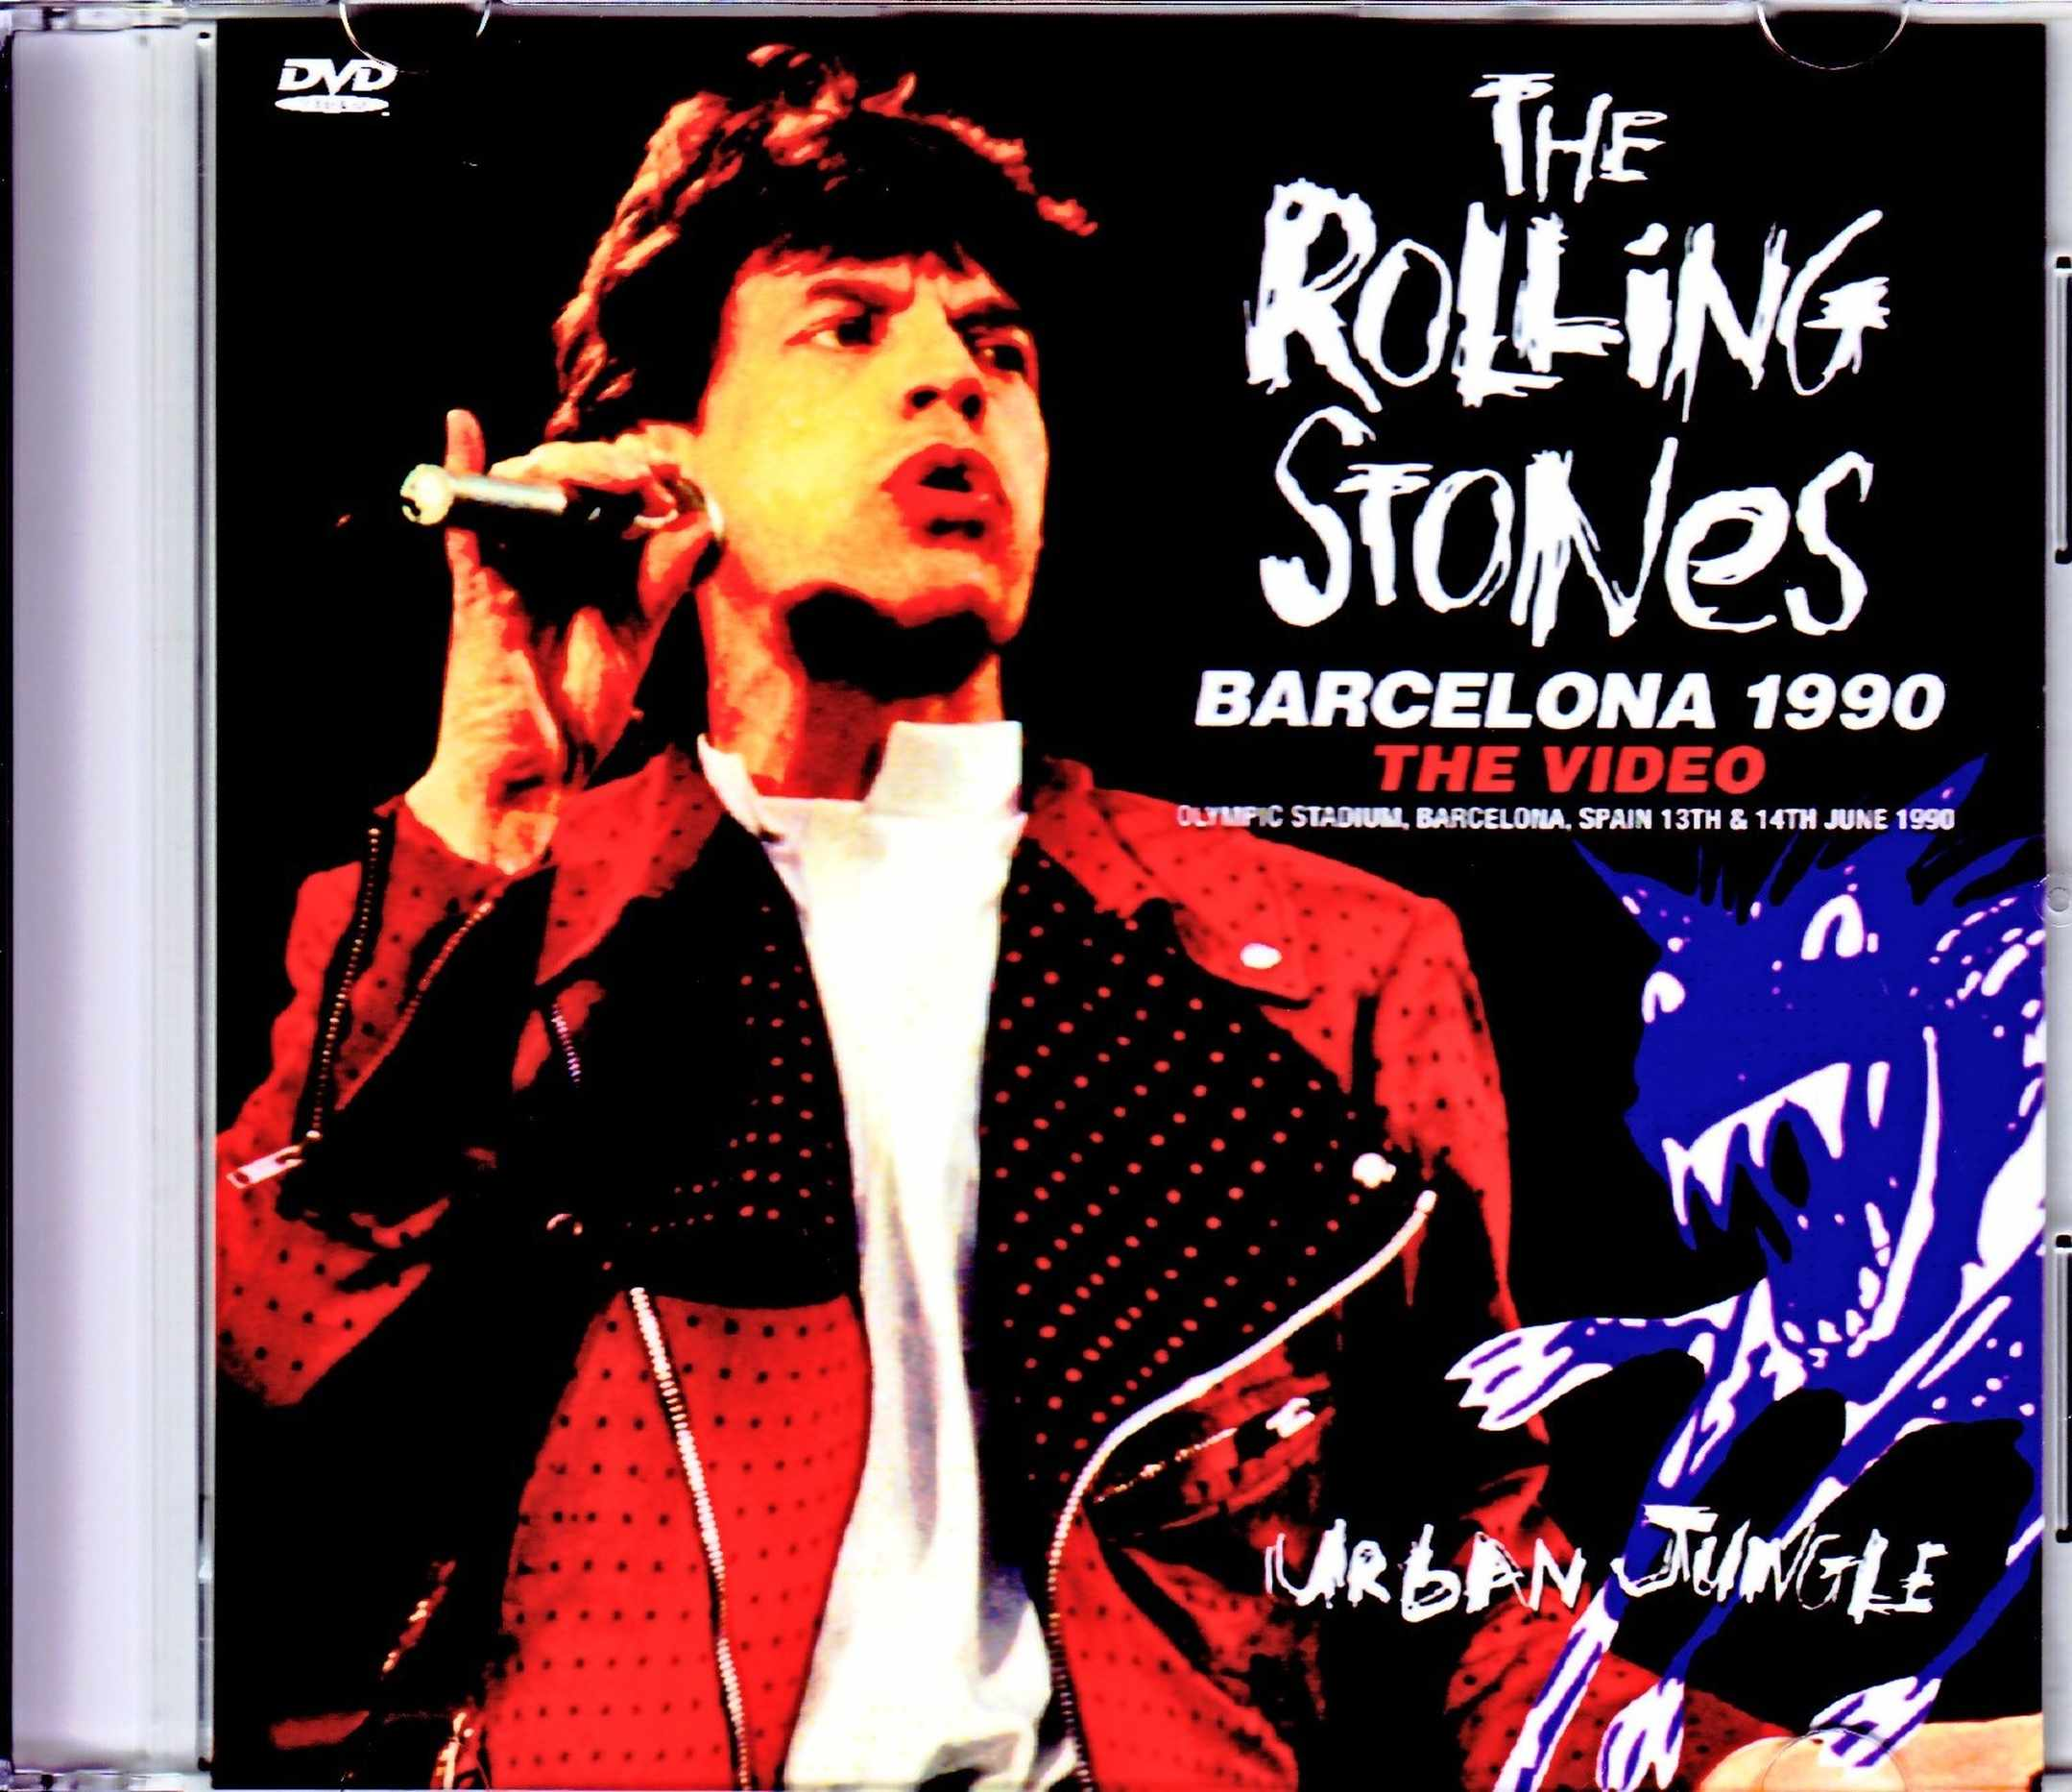 Rolling Stones ローリング・ストーンズ/Spain 1990 2Days Mix